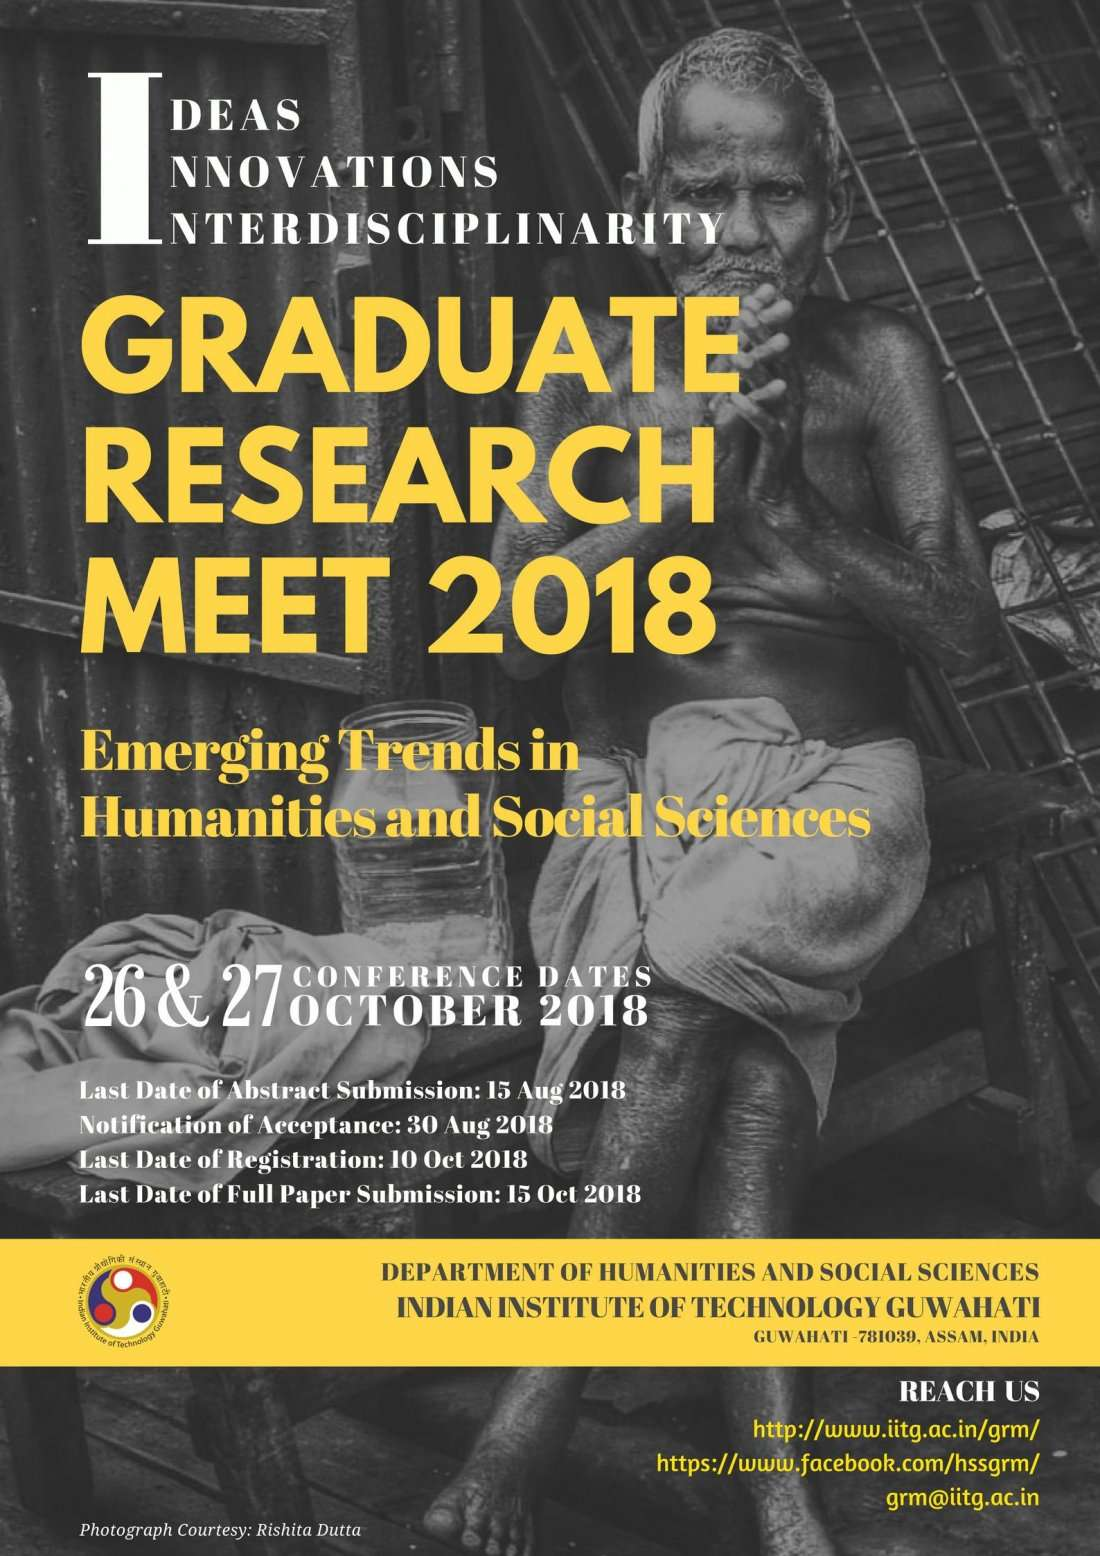 Graduate Research Meet 2018 IIT Guwahati